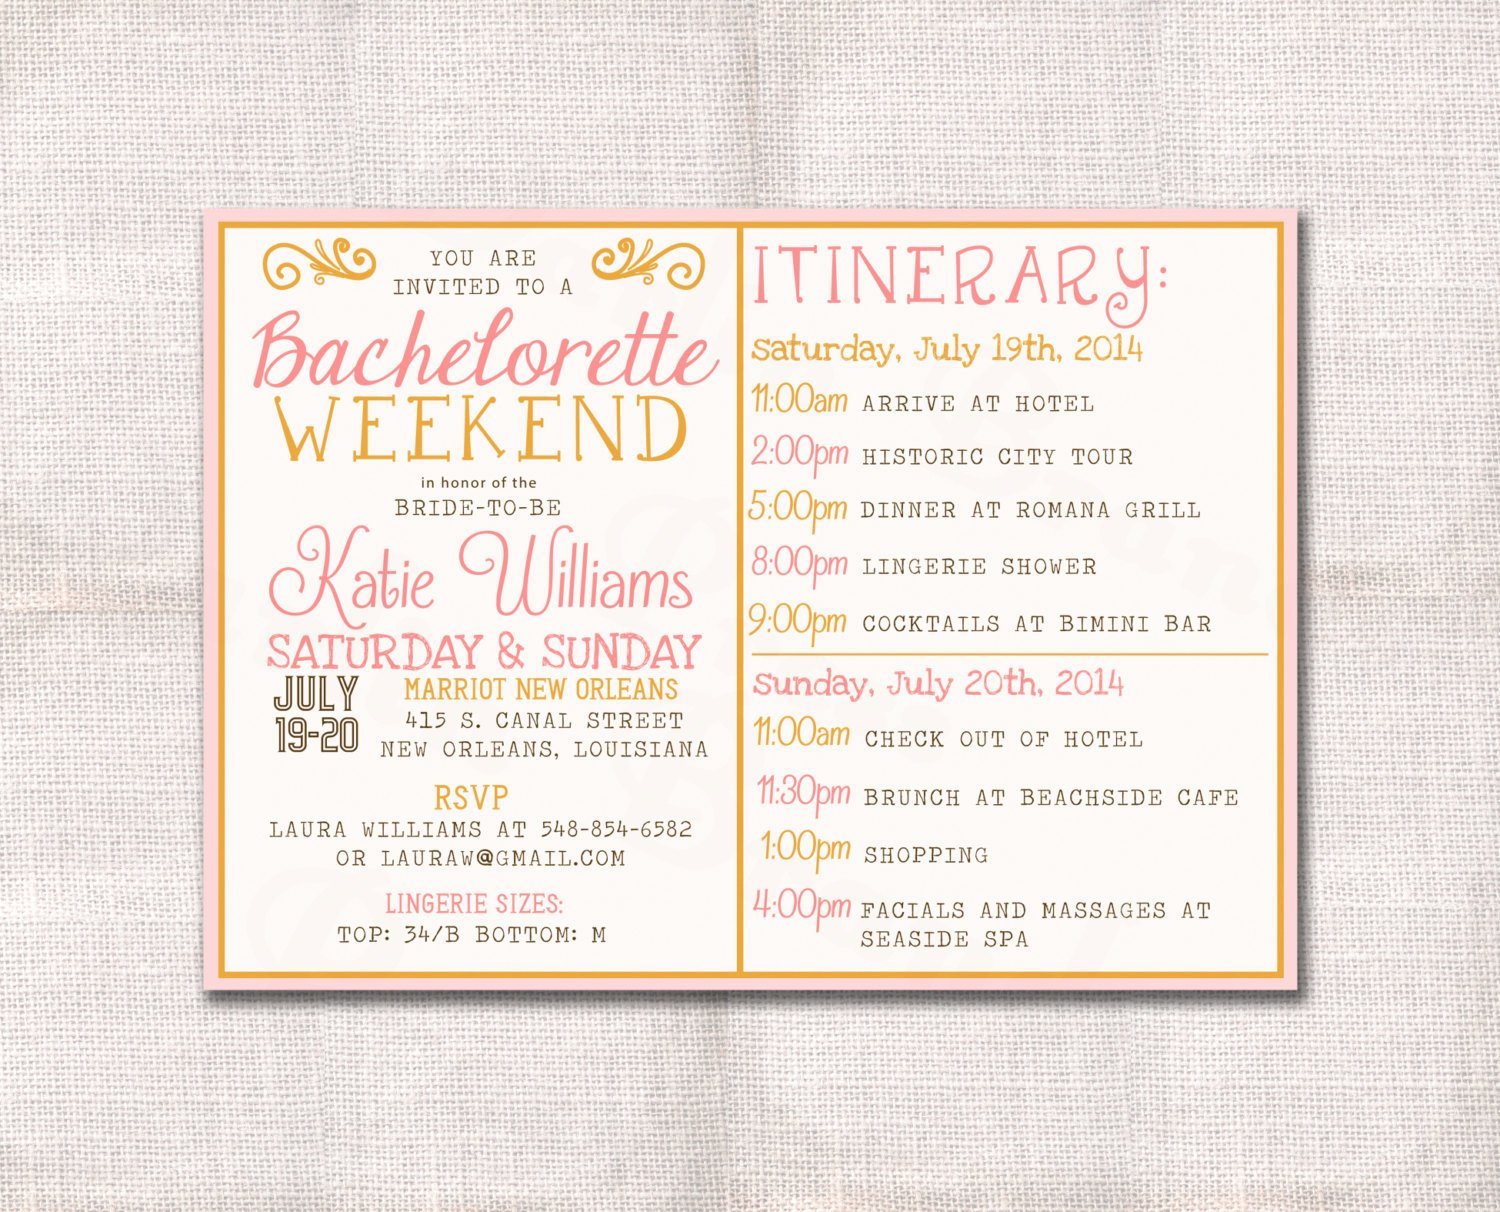 Bachelorette Party Itinerary Template Elegant Bachelorette Party Weekend Invitation and Itinerary Custom